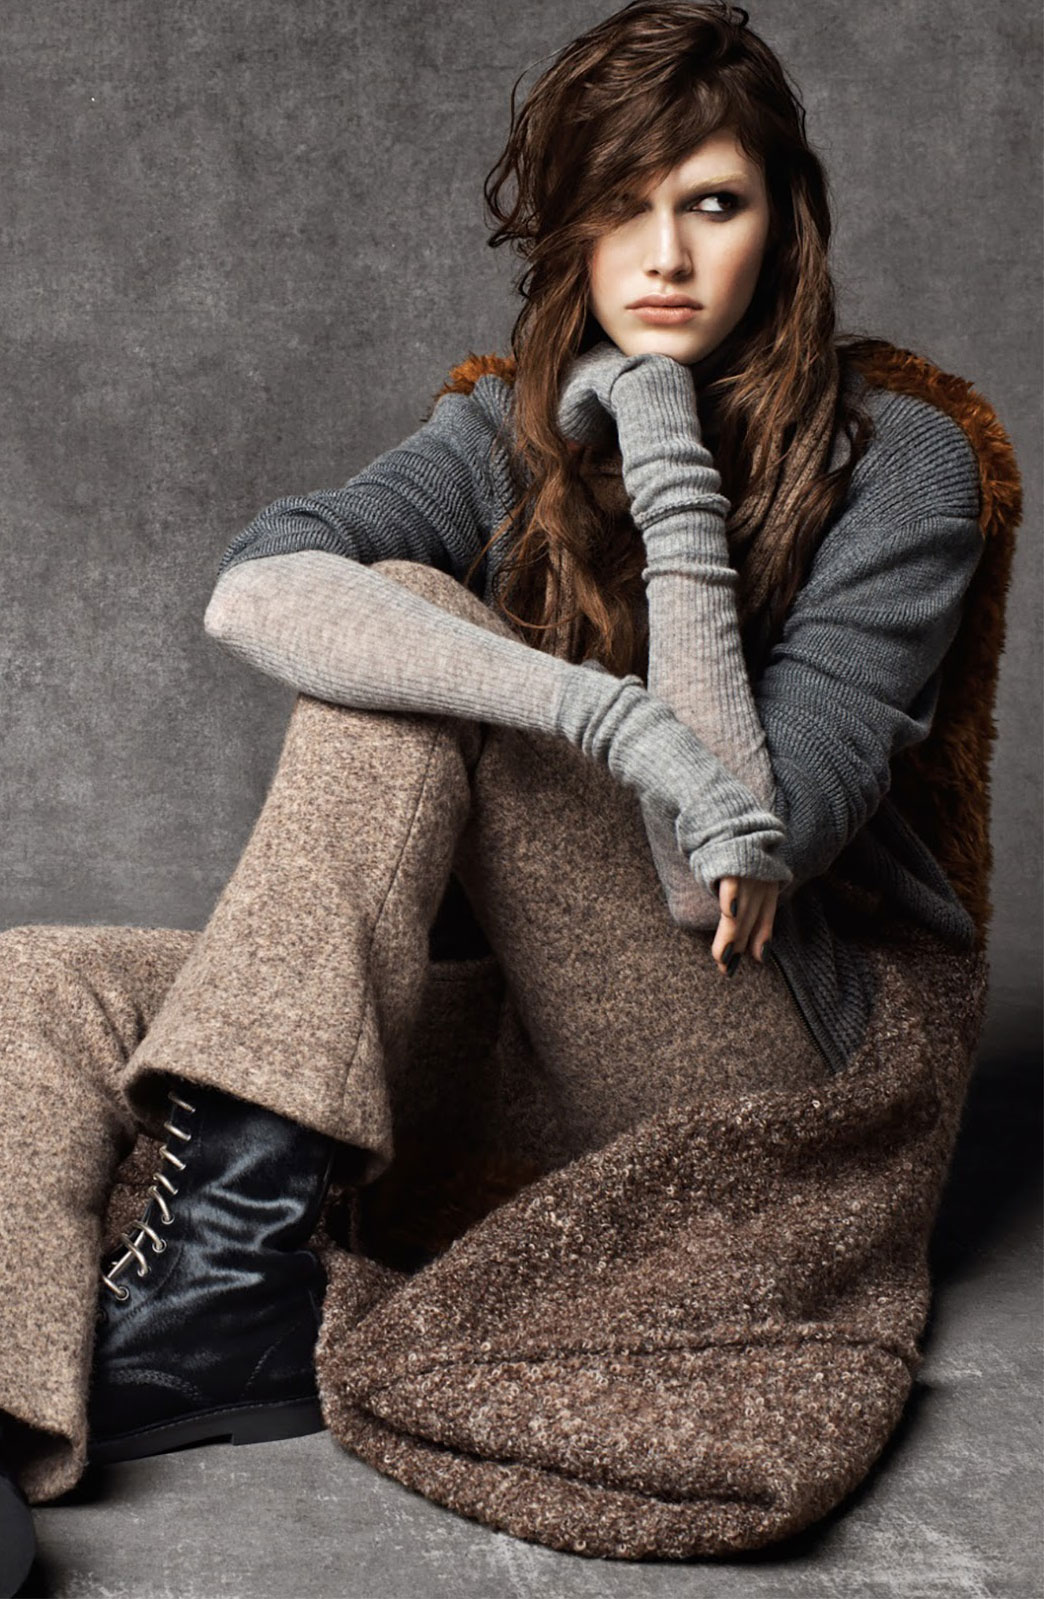 Vanessa Moody in Cold Play | Teen Vogue October 2014 (photography: Kacper Kasprzyk, styling: Elin Svahn)